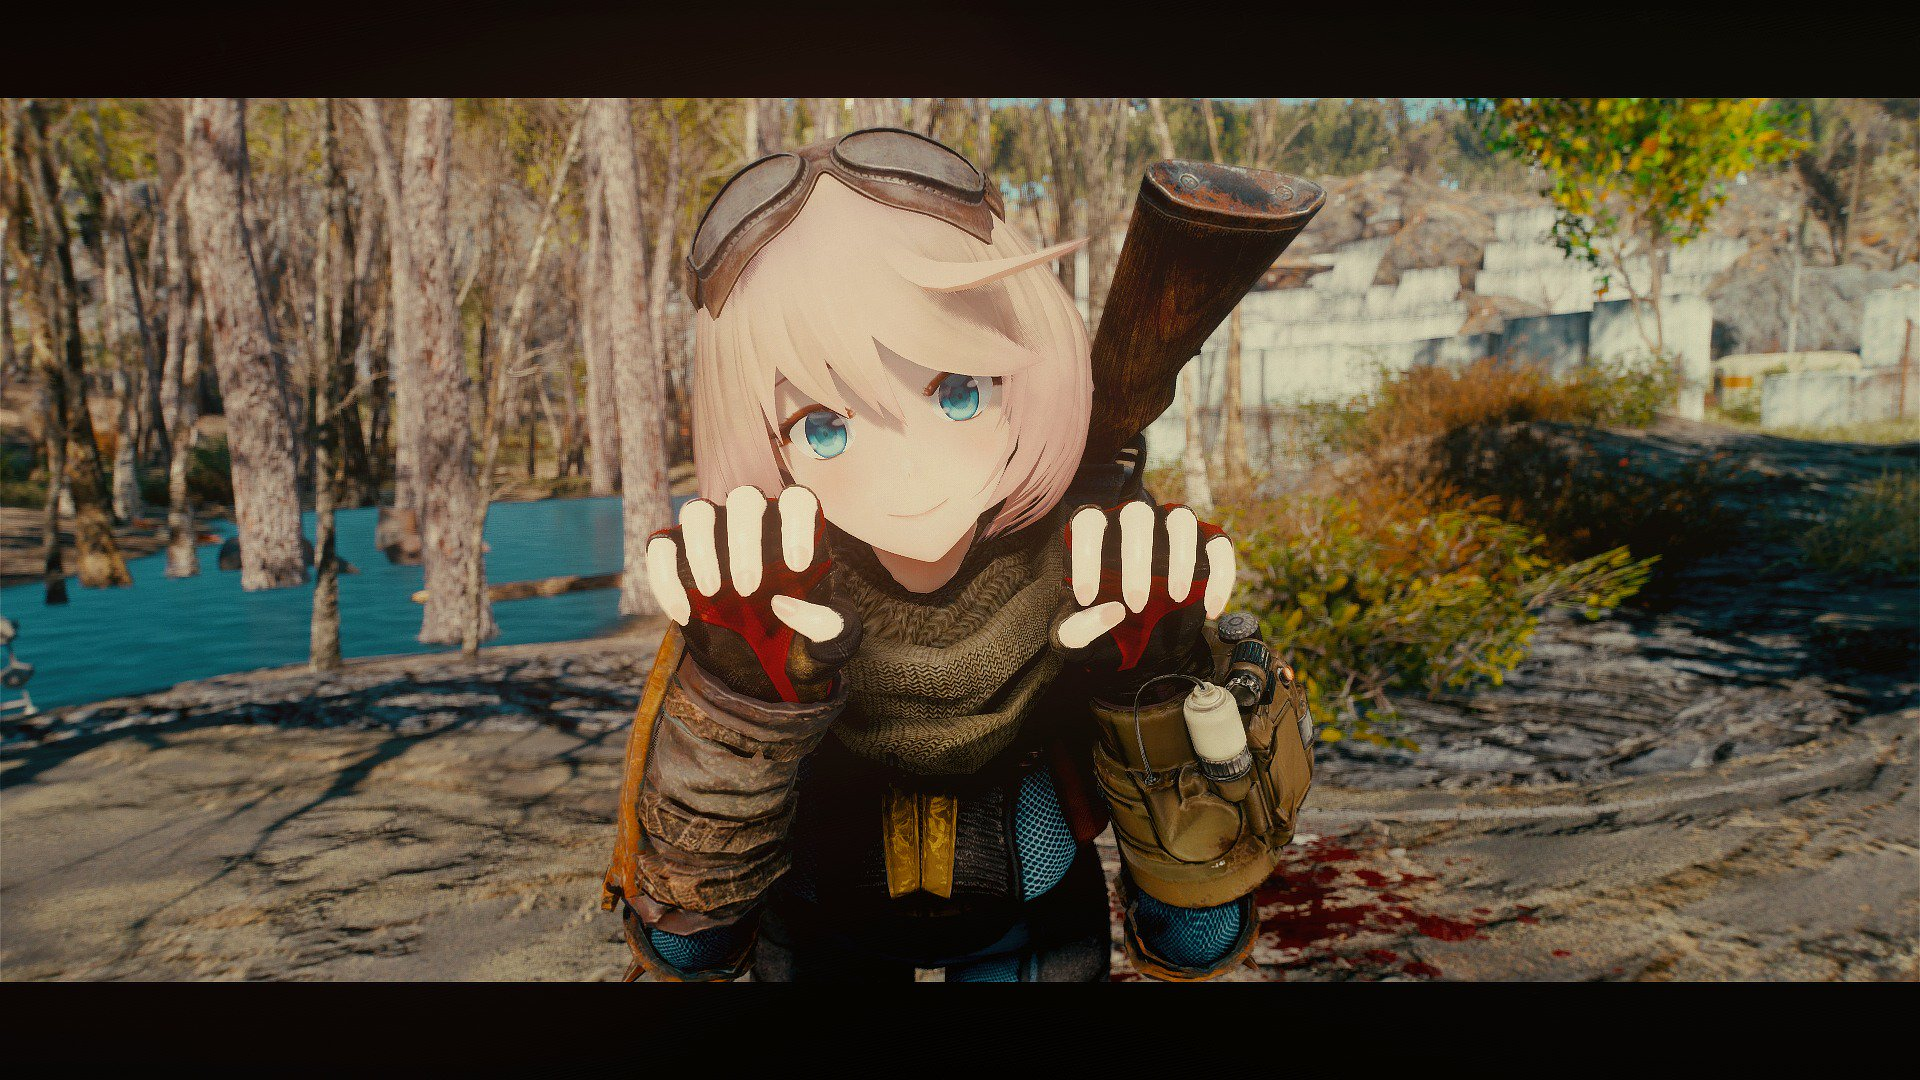 Fallout 4 Mod Gives Characters Anime Makeover